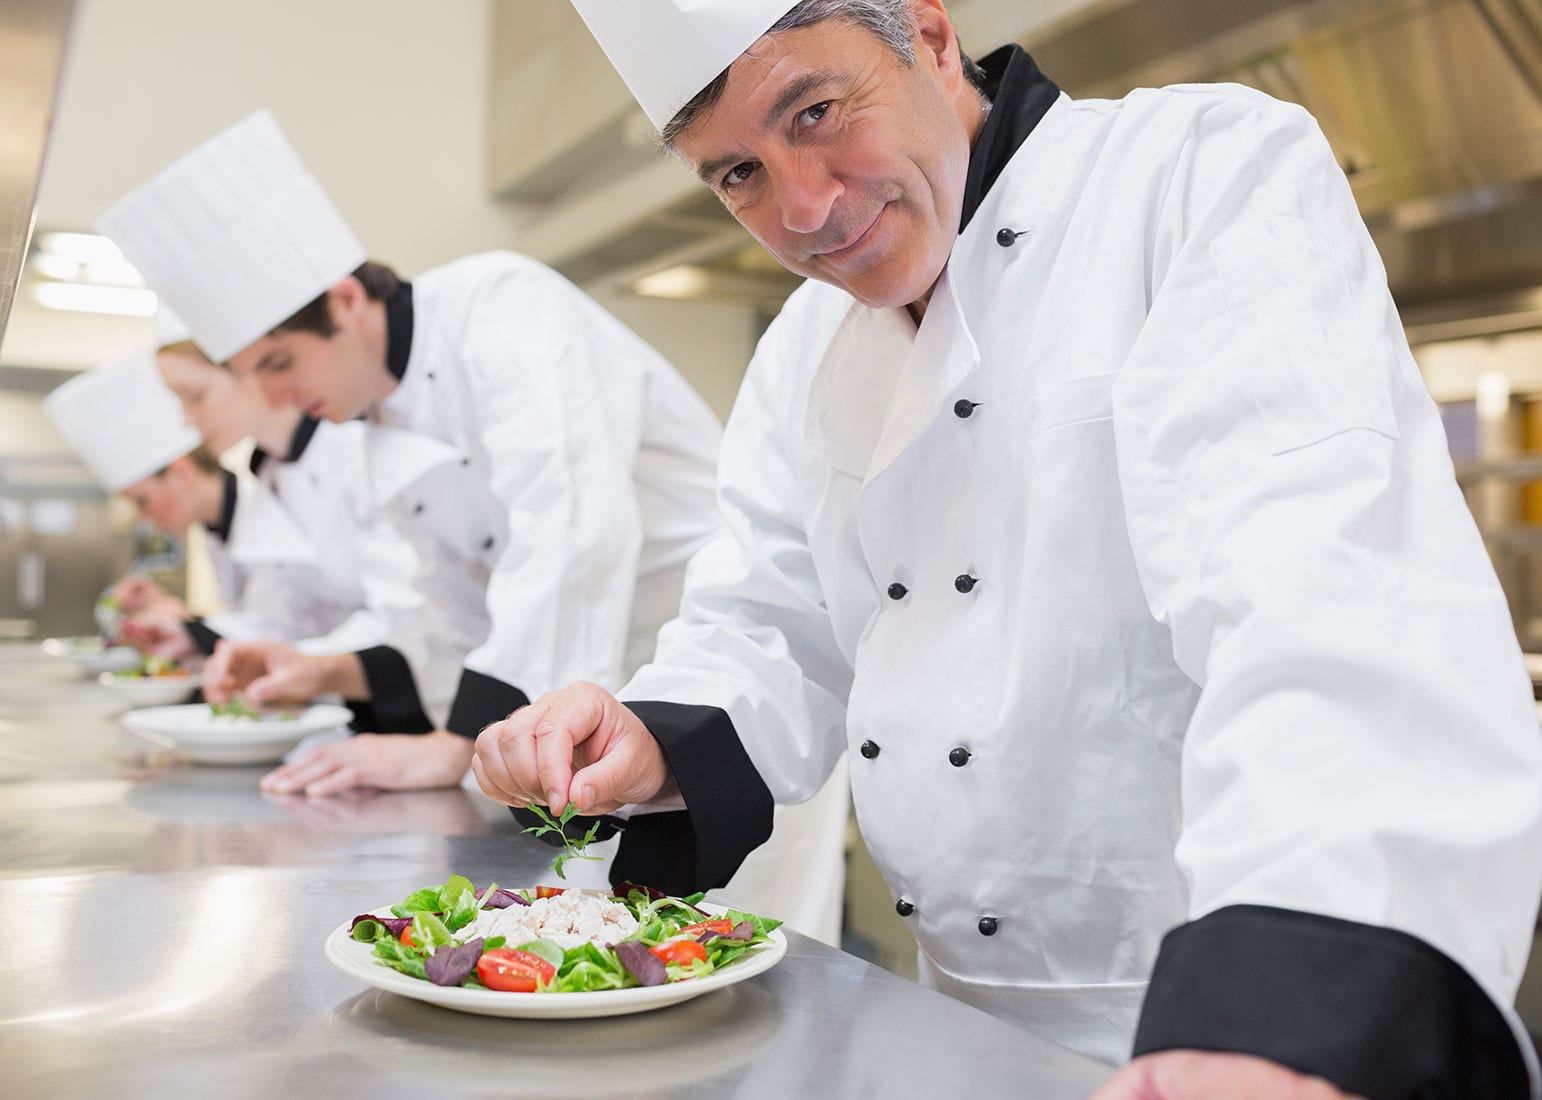 Chef from our facility